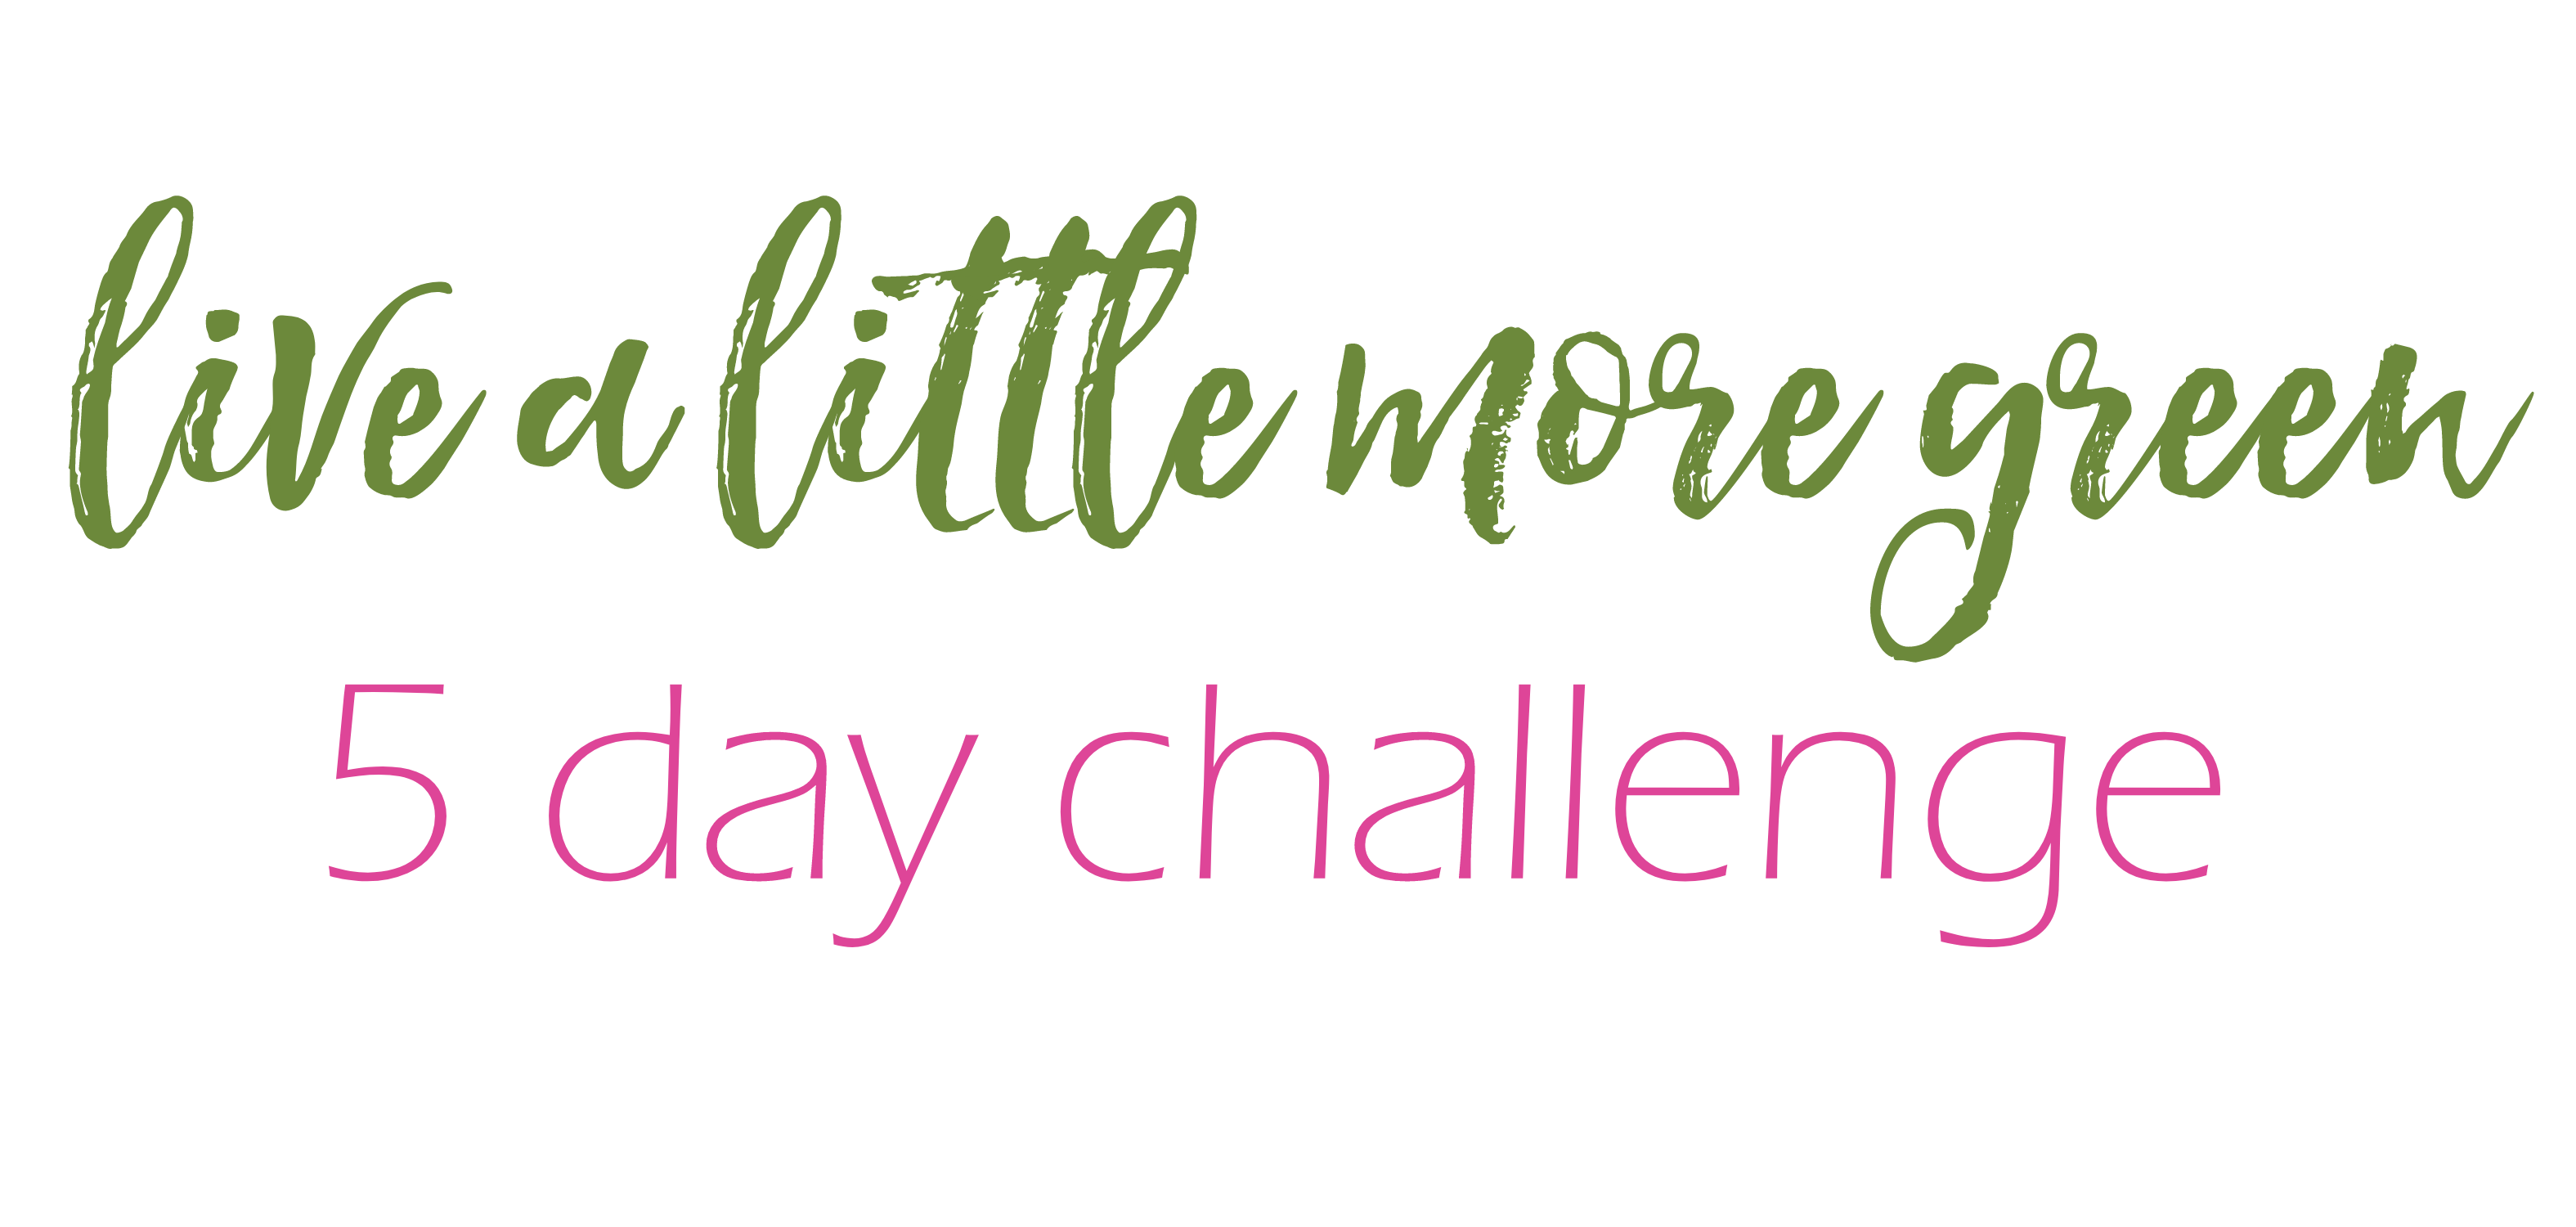 live a little more green challenge